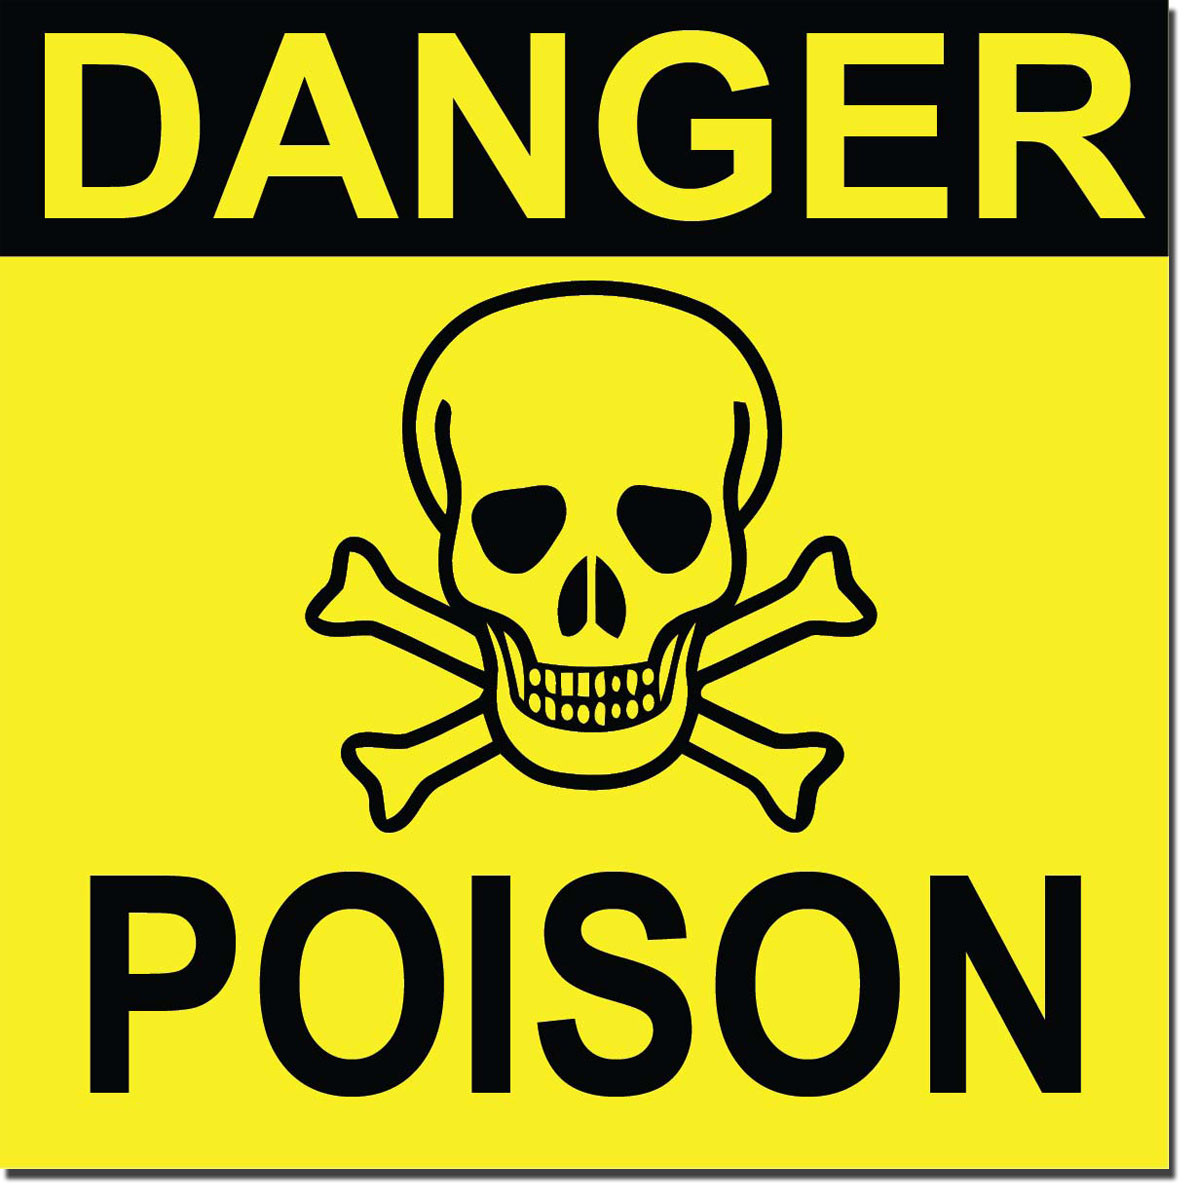 Poison control clipart svg library library Free Poisoning Cliparts, Download Free Clip Art, Free Clip ... svg library library